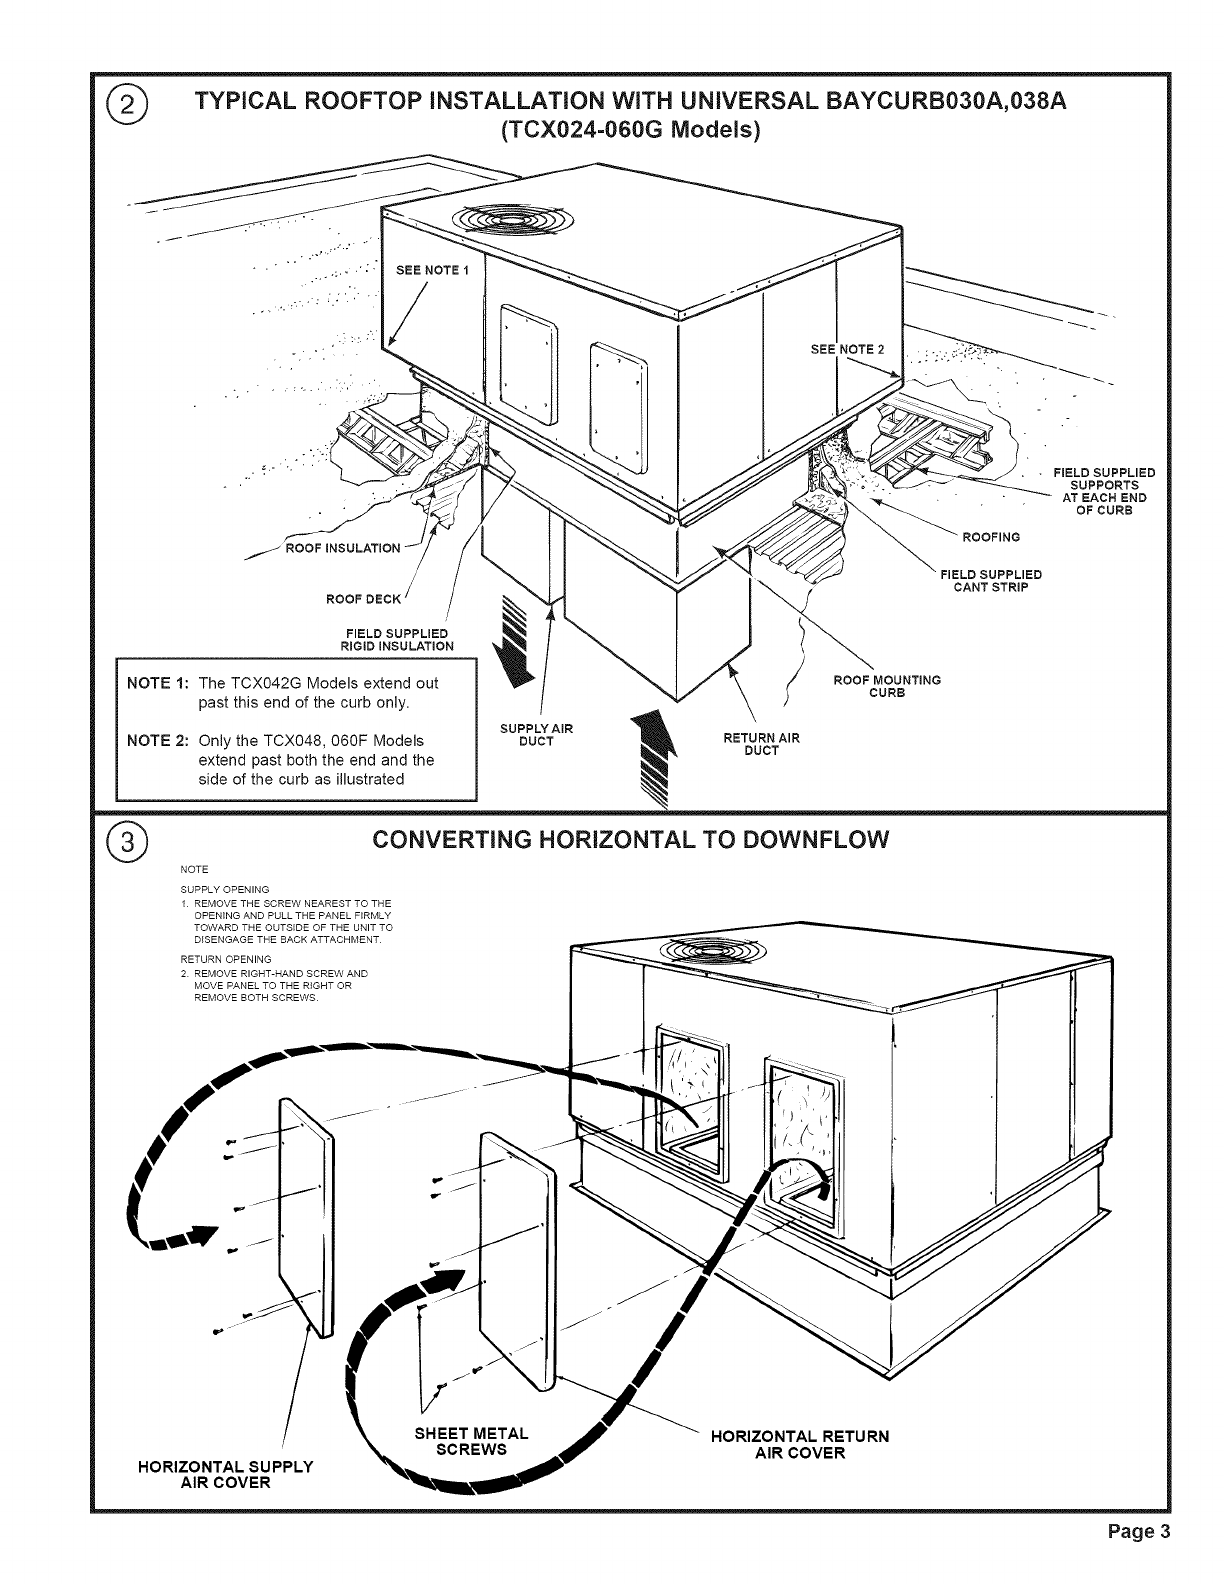 trane package units both units bined manual l0904650 Trane Furnace Wiring Diagram typical rooftop installation with universal baycurb030a 038a